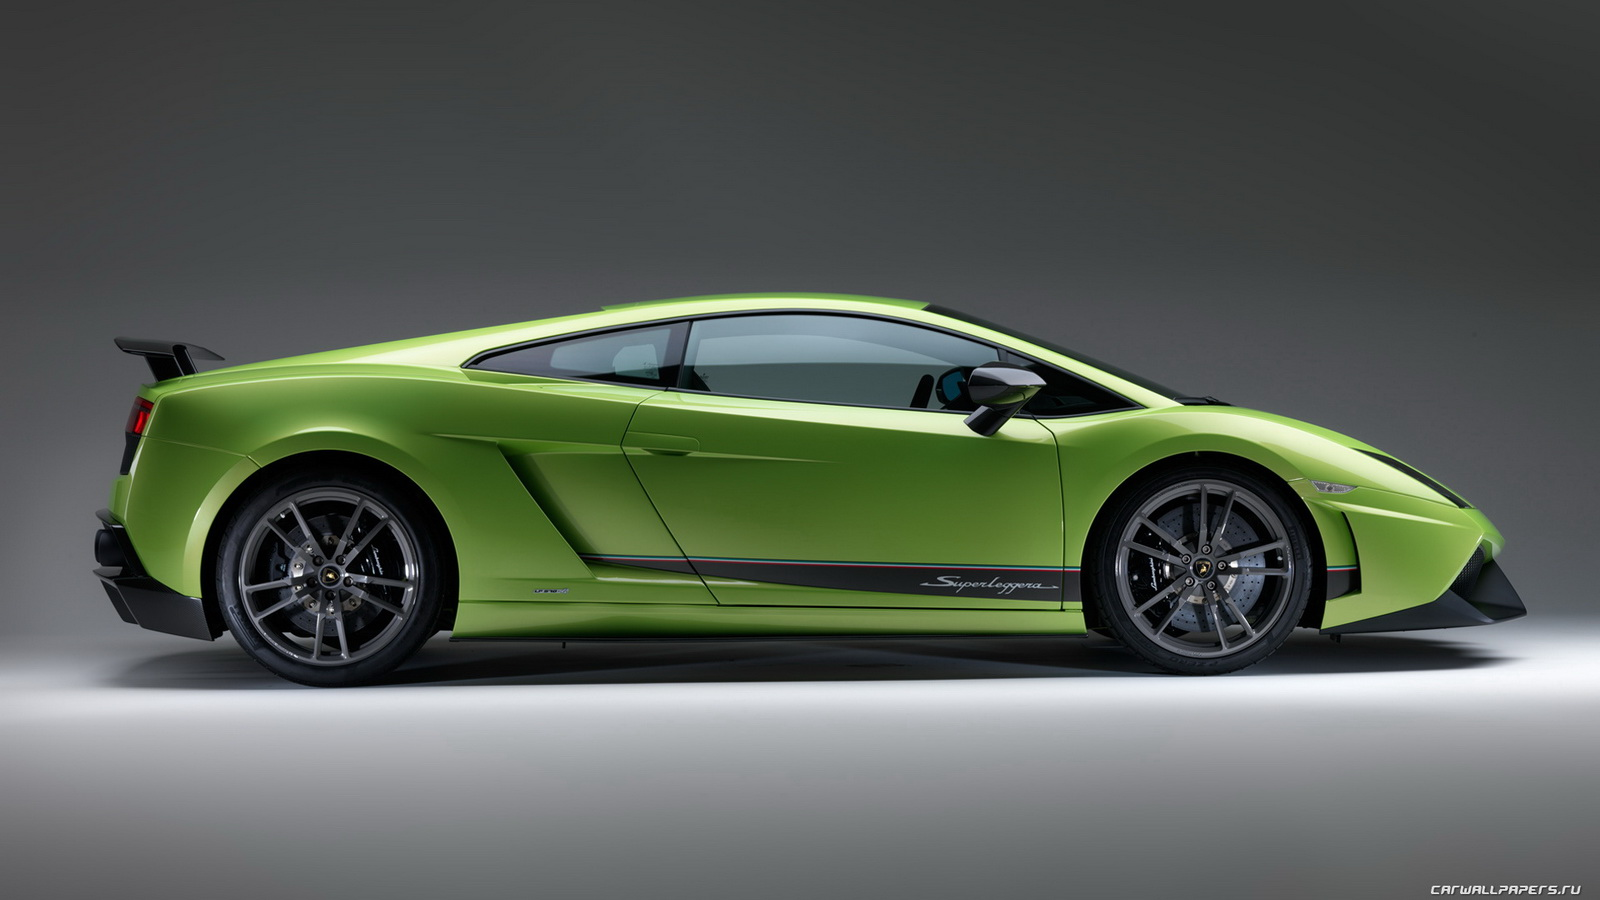 Lamborghini Gallardo Superleggera - 1600 x 900, 10 из 16